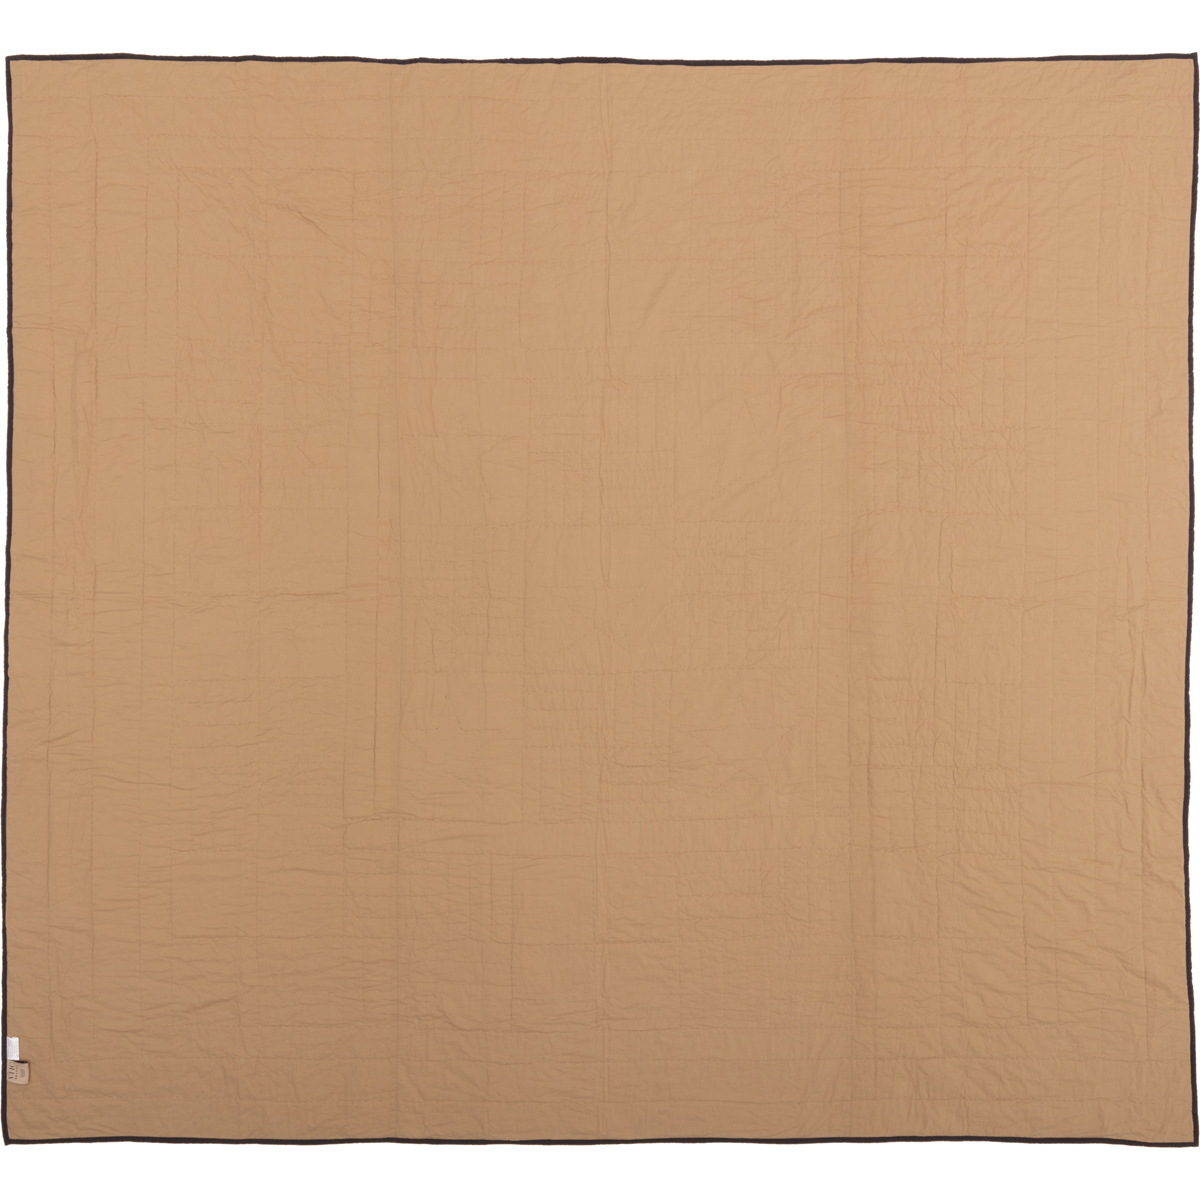 Black-Check-Star-King-Quilt-105Wx95L-image-3